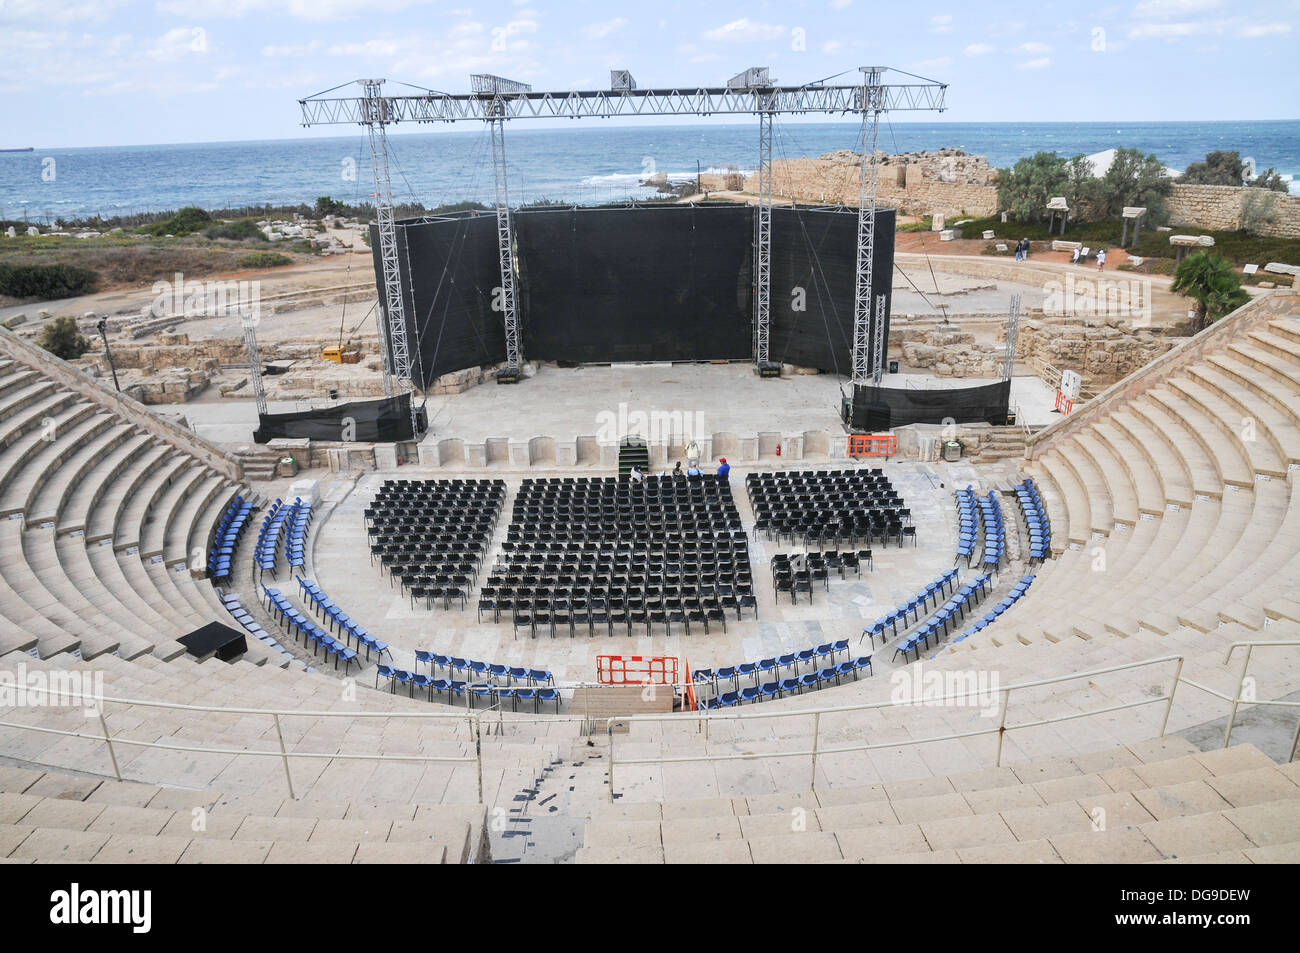 Israel, Caesarea, The amphitheater, on the city's southern shore Currently used for open air performances - Stock Image